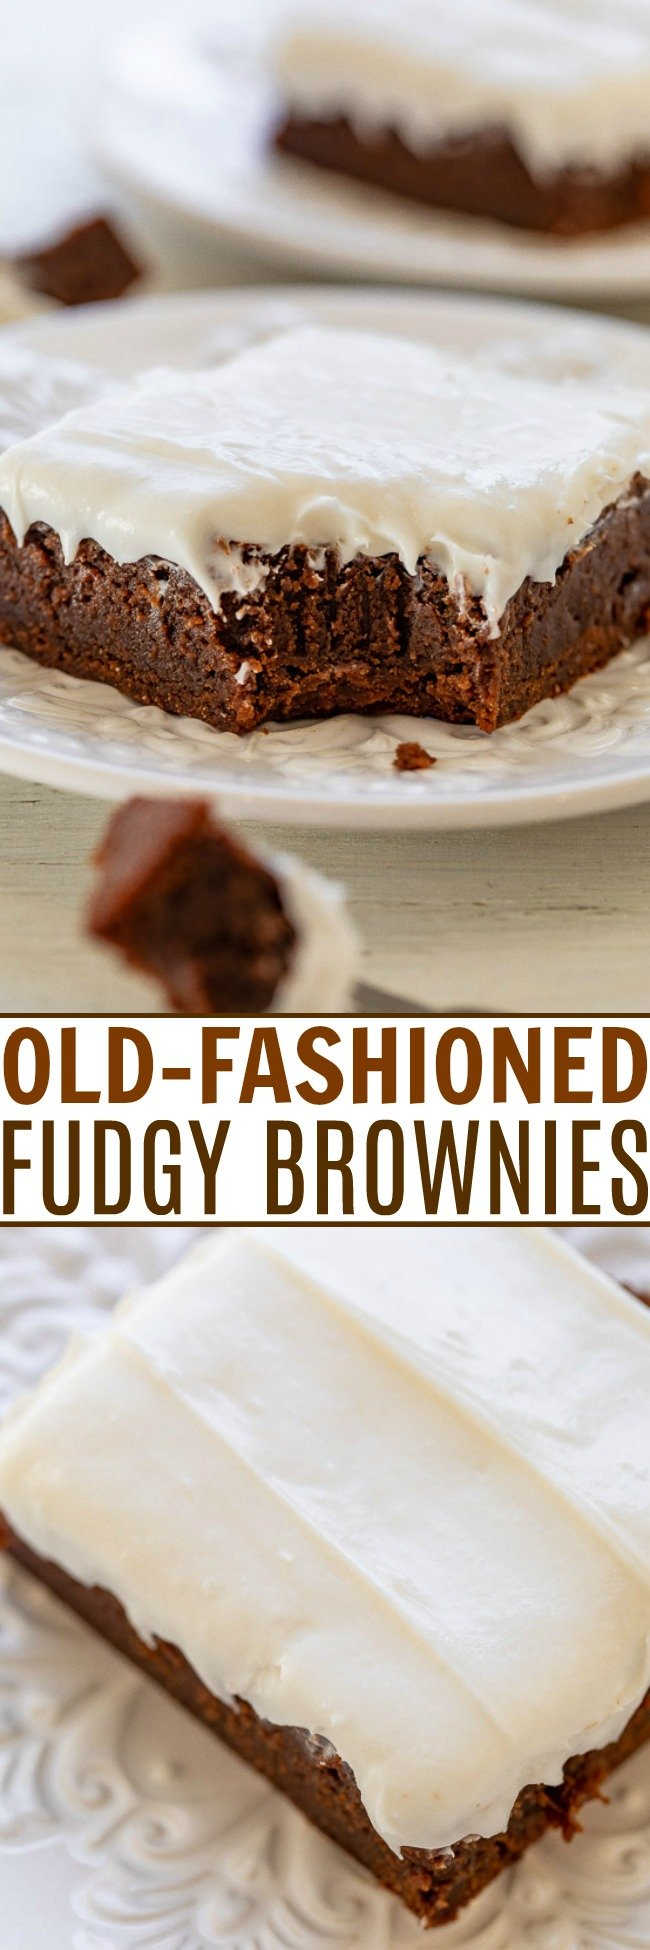 Old-Fashioned Fudgy Frosted Brownies - EASY one-bowl SCRATCH brownies that are perfectly fudgy and FAST to make when you're in the mood for chocolate!! The vanilla buttercream gives them a nostalgic taste that everyone LOVES!!